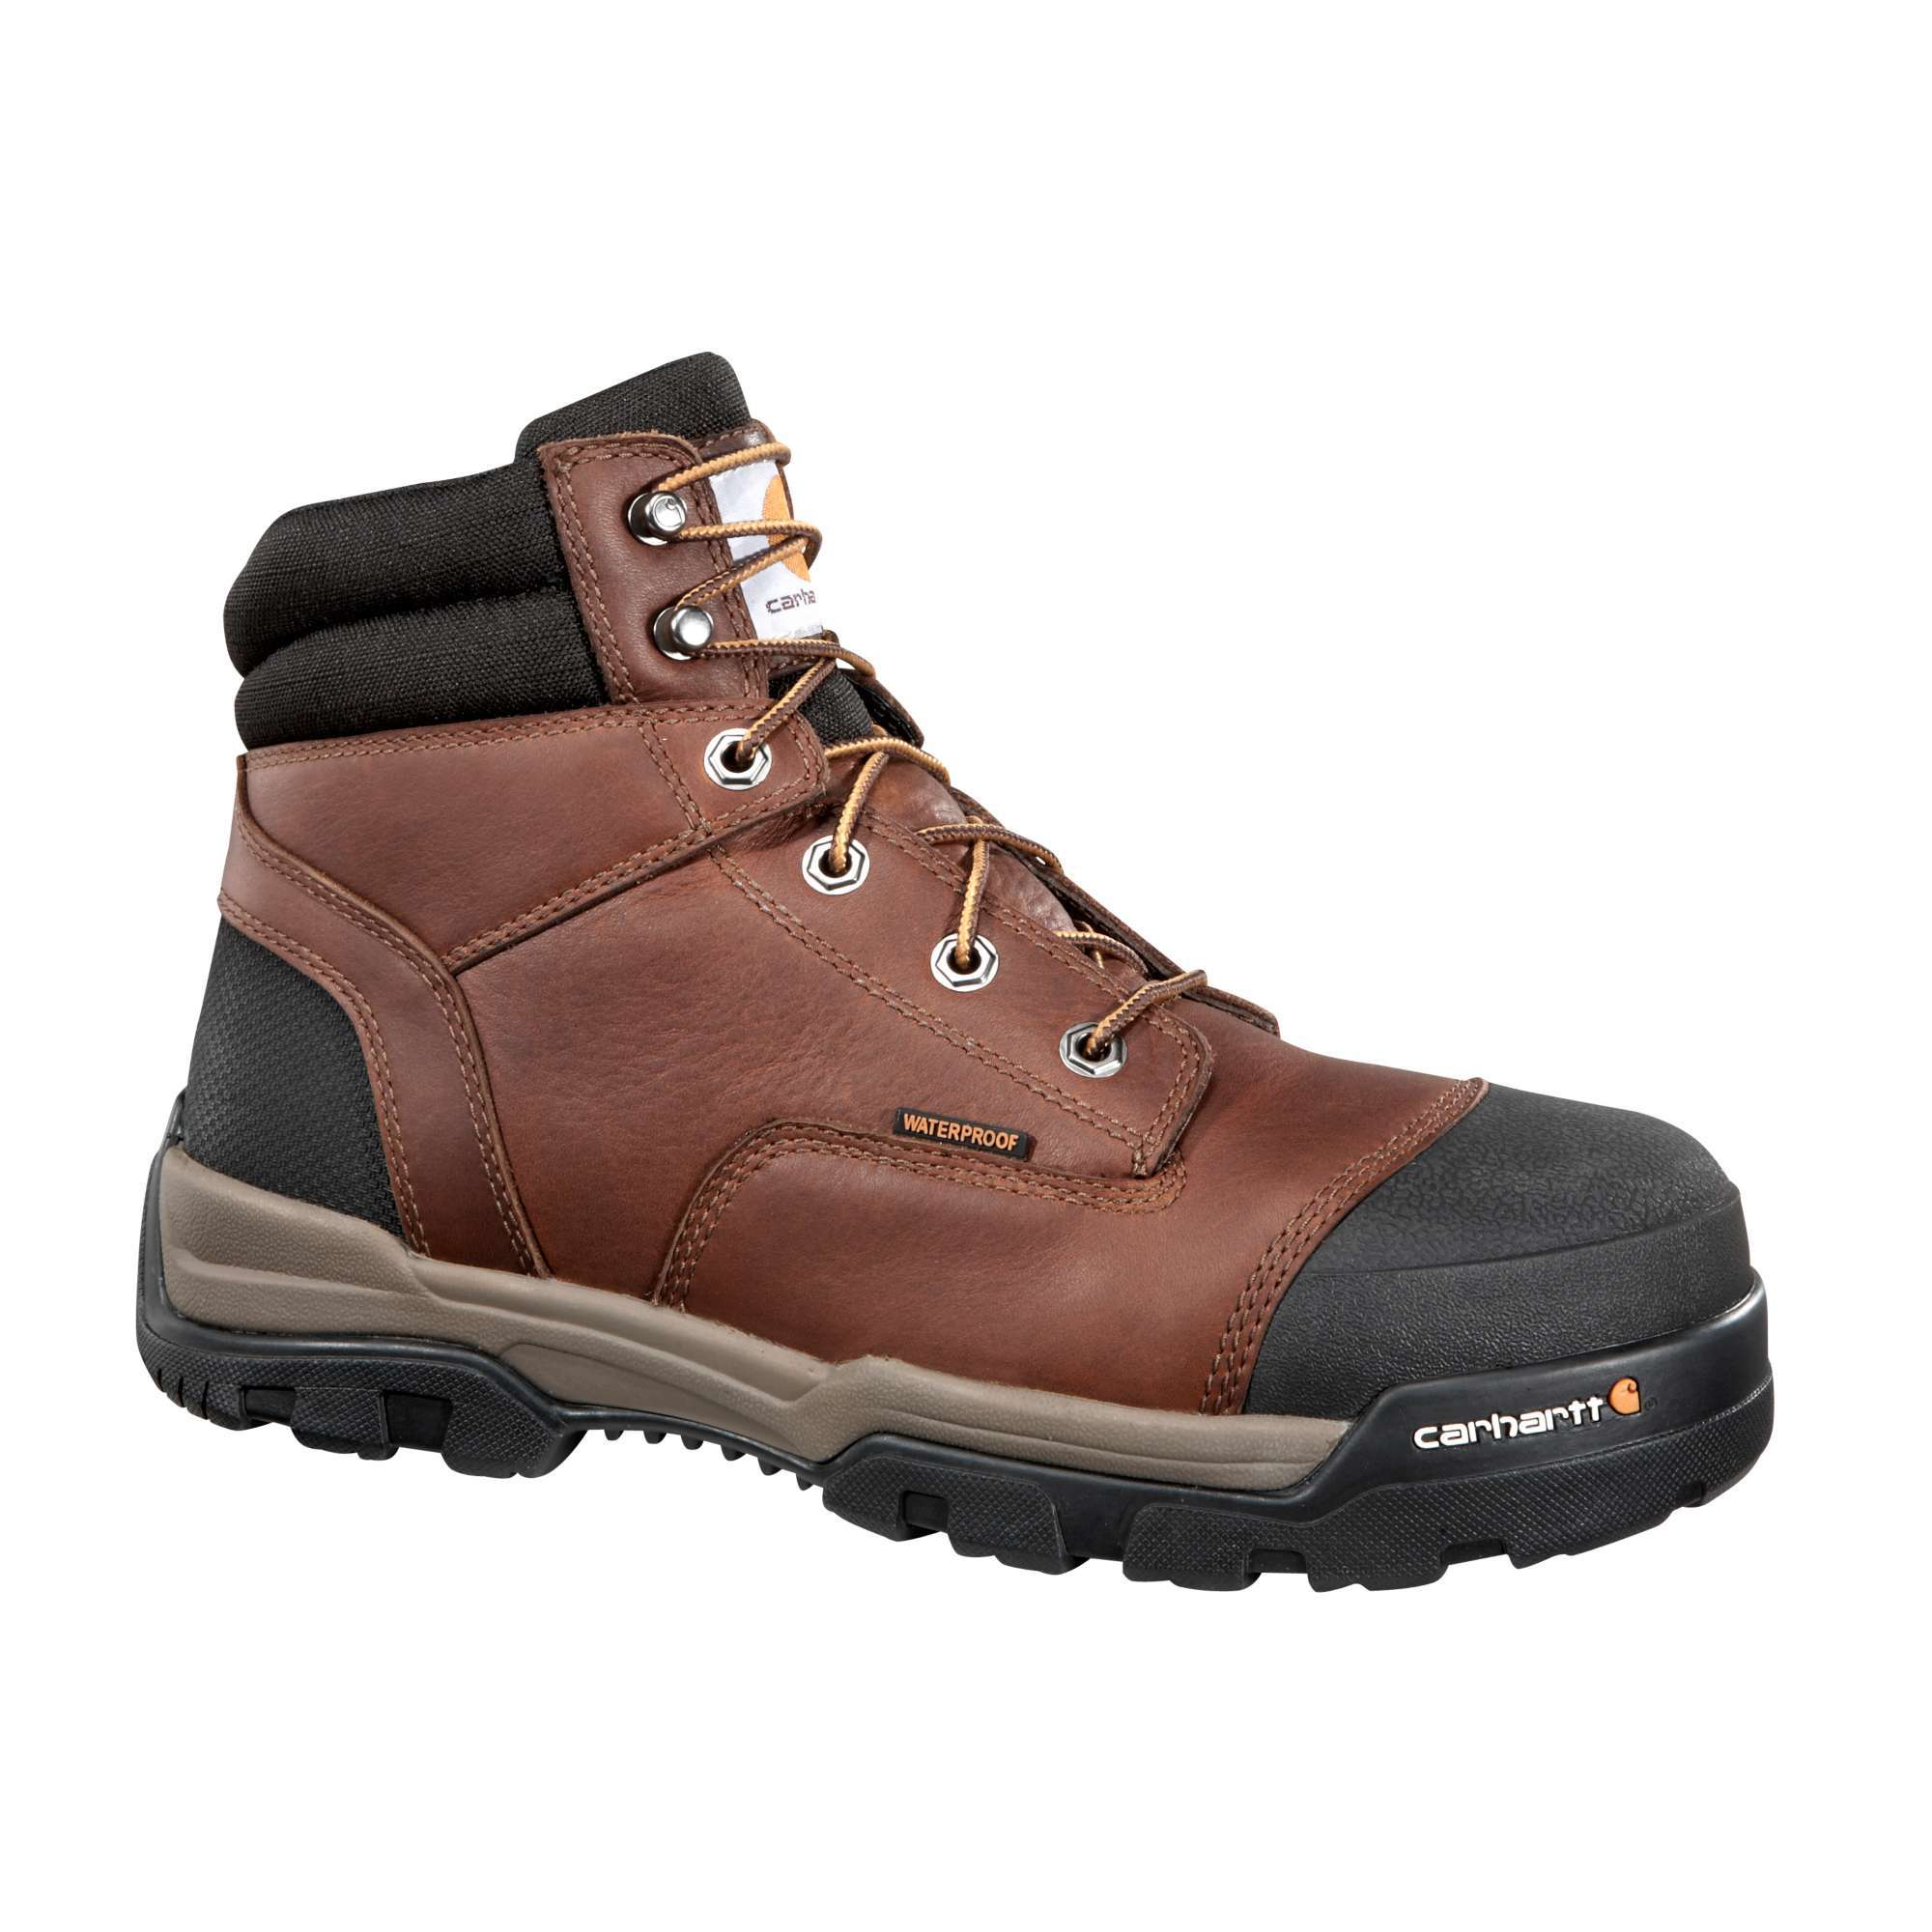 MEN'S GROUND FORCE 6-INCH COMPOSITE TOE WORK BOOT